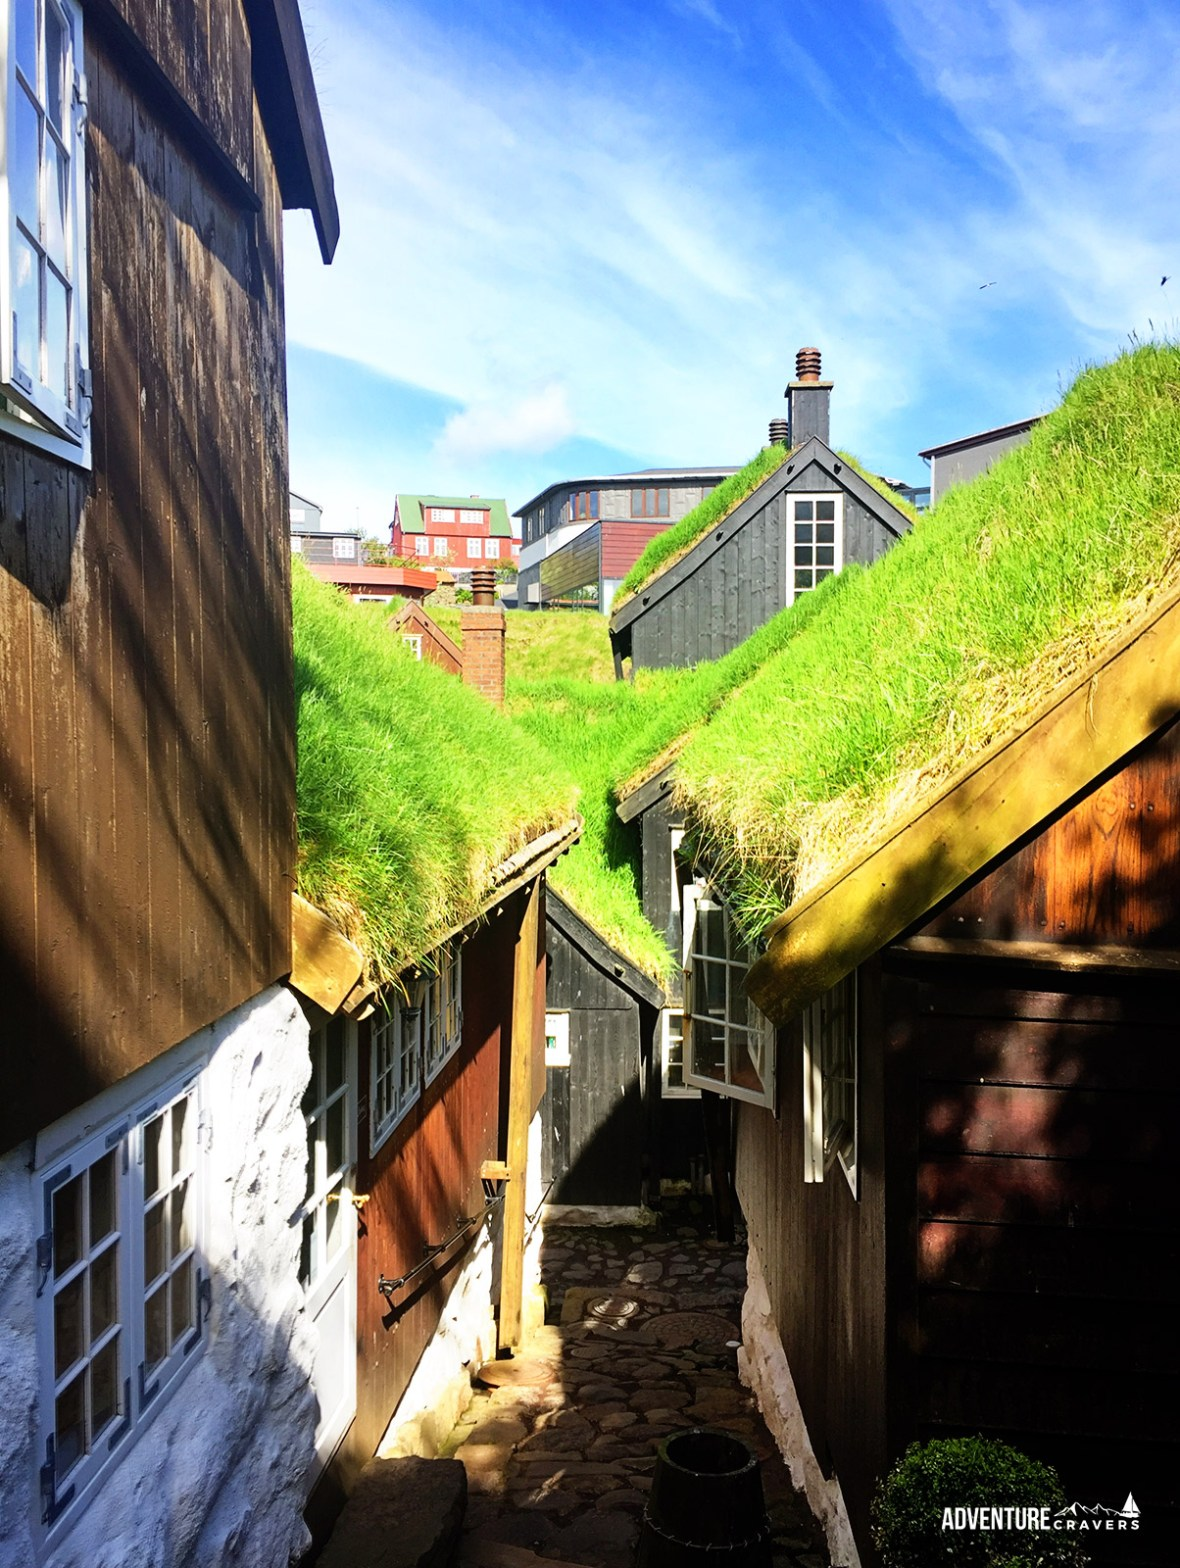 Grass roofs in the town or Torshavn, Faroe Islands